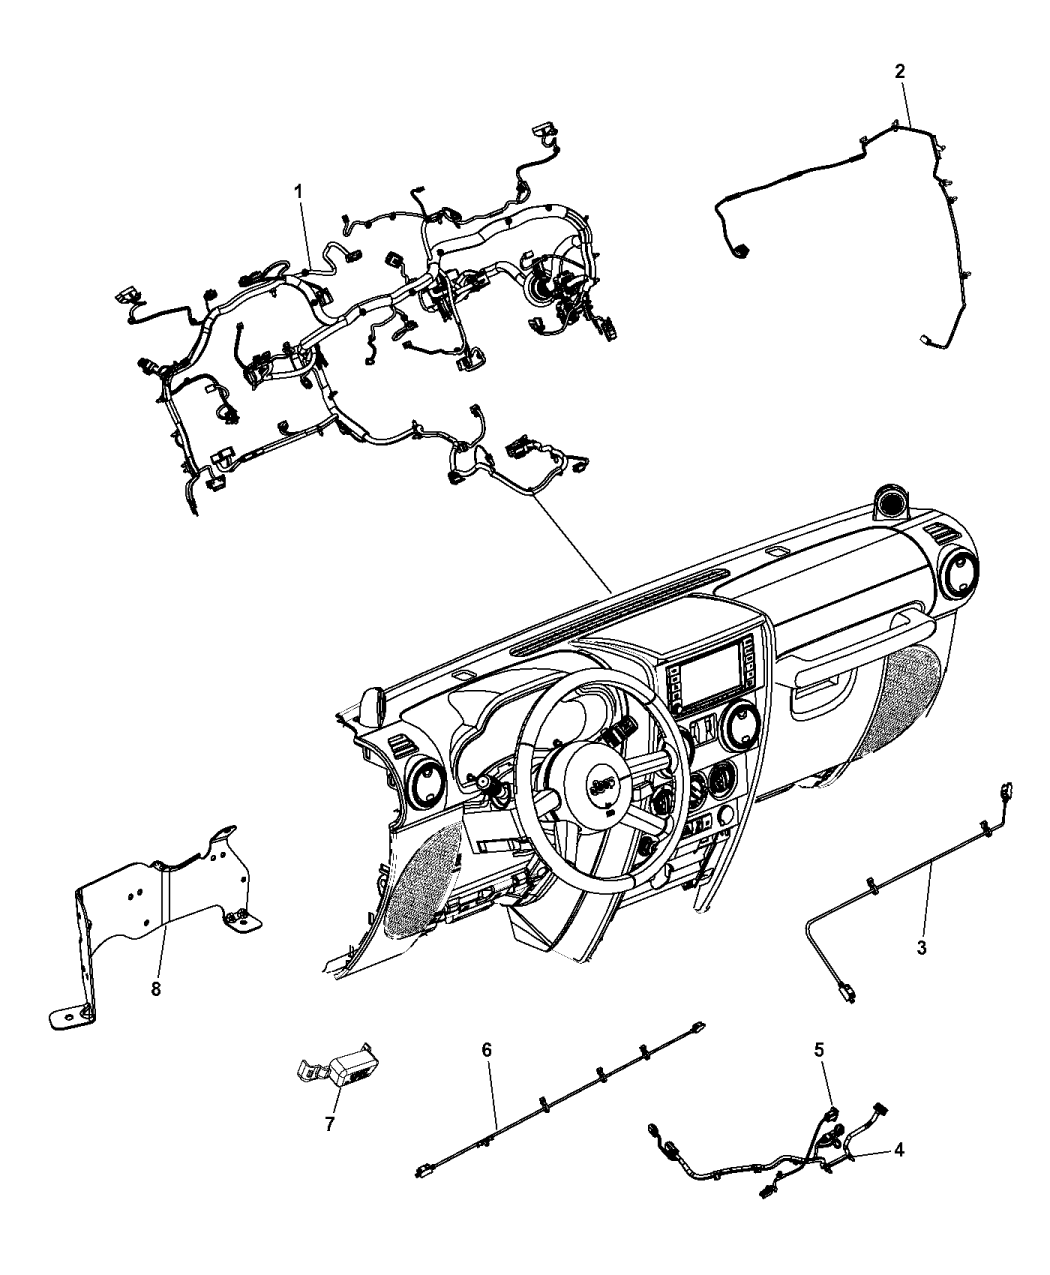 1990 jeep wrangler wiring diagram 2015 jeep wrangler wiring - instrument panel - mopar parts ...